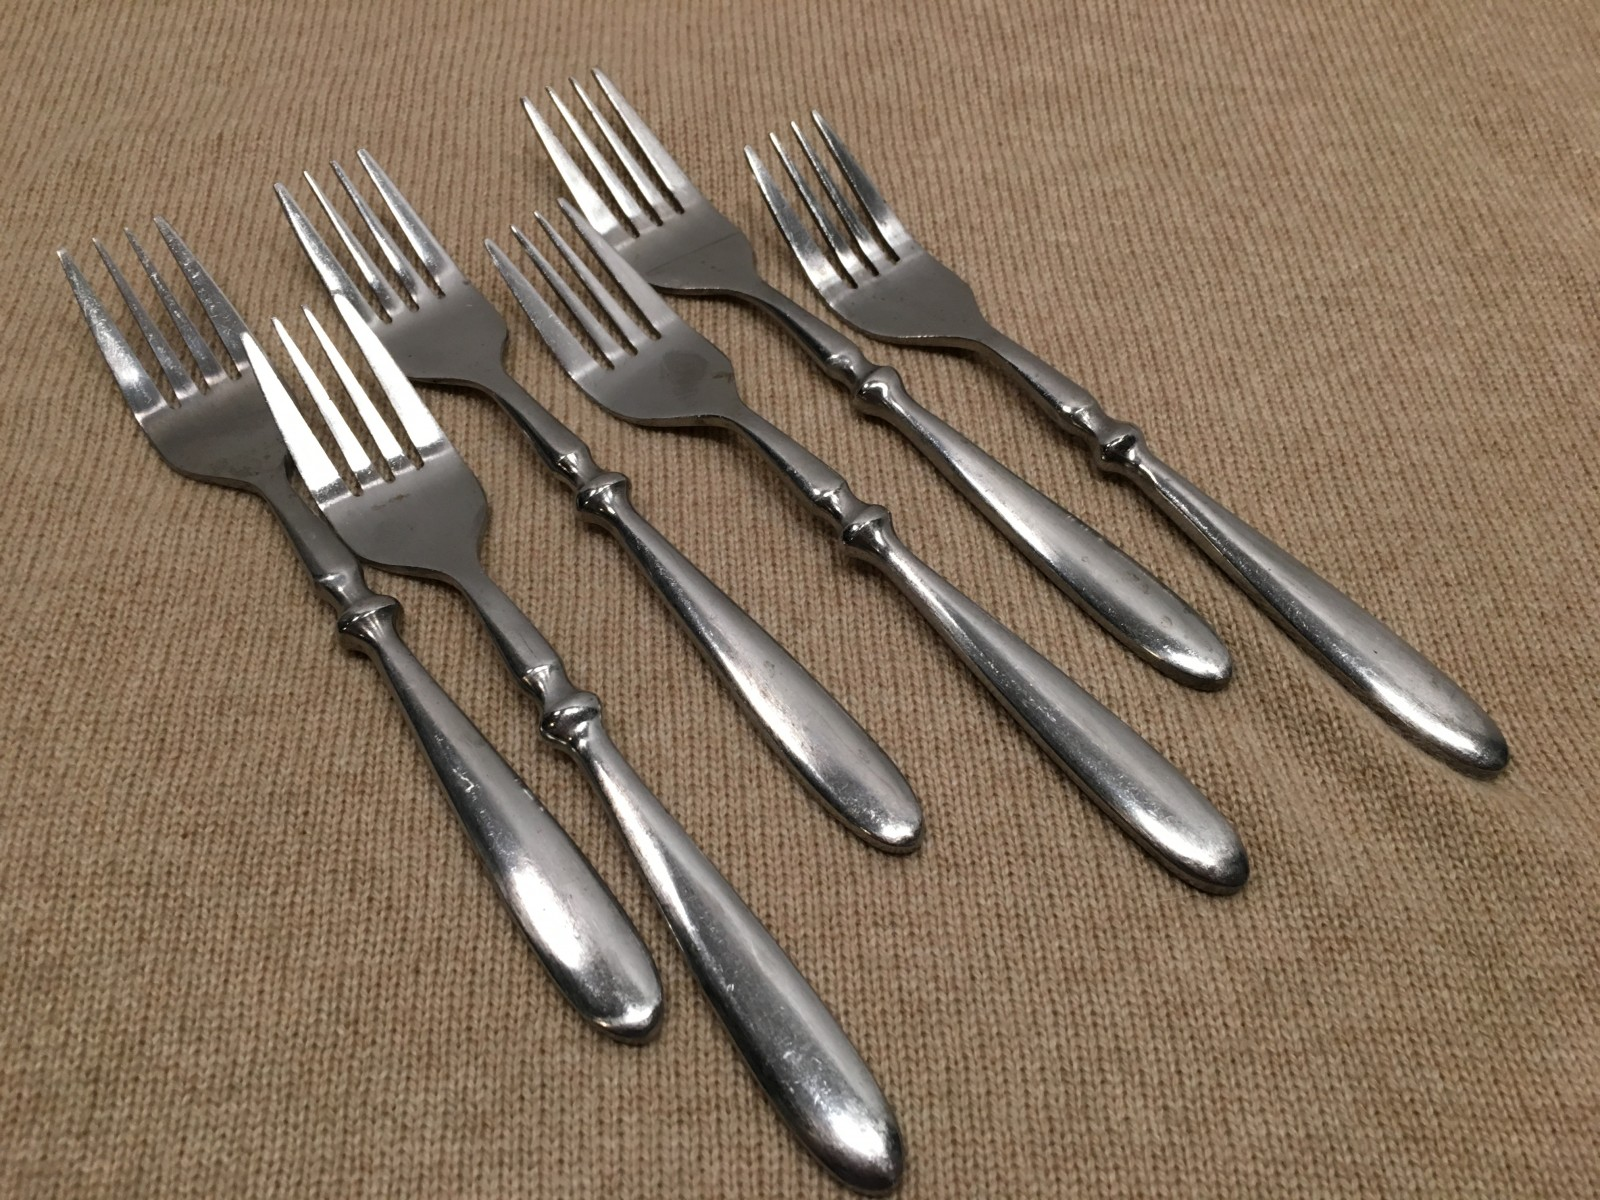 Attractive hampton silversmiths for kitchen and dining sets with hampton silversmiths stainless